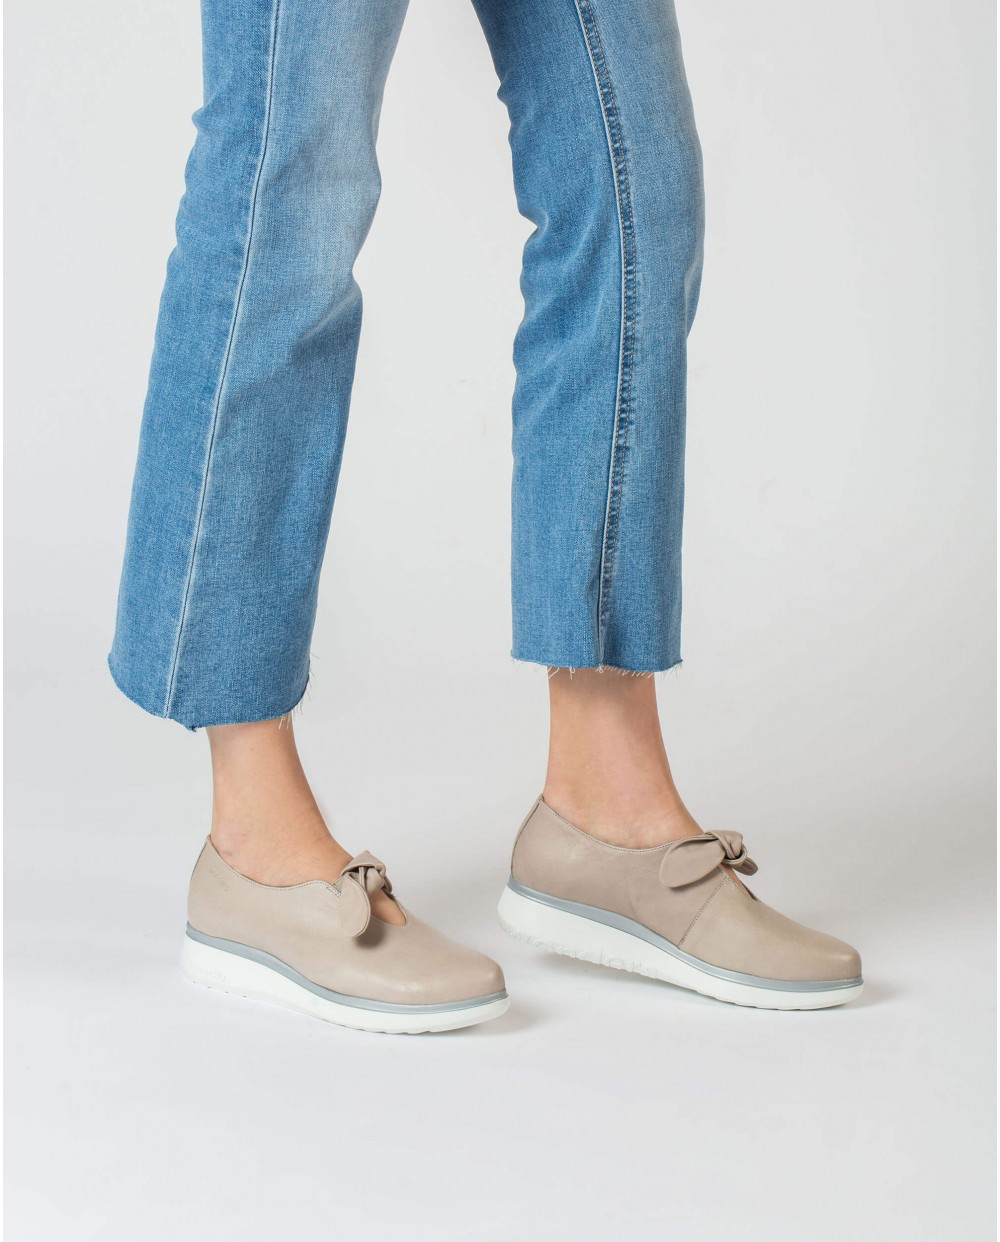 Moccasins with bow detail